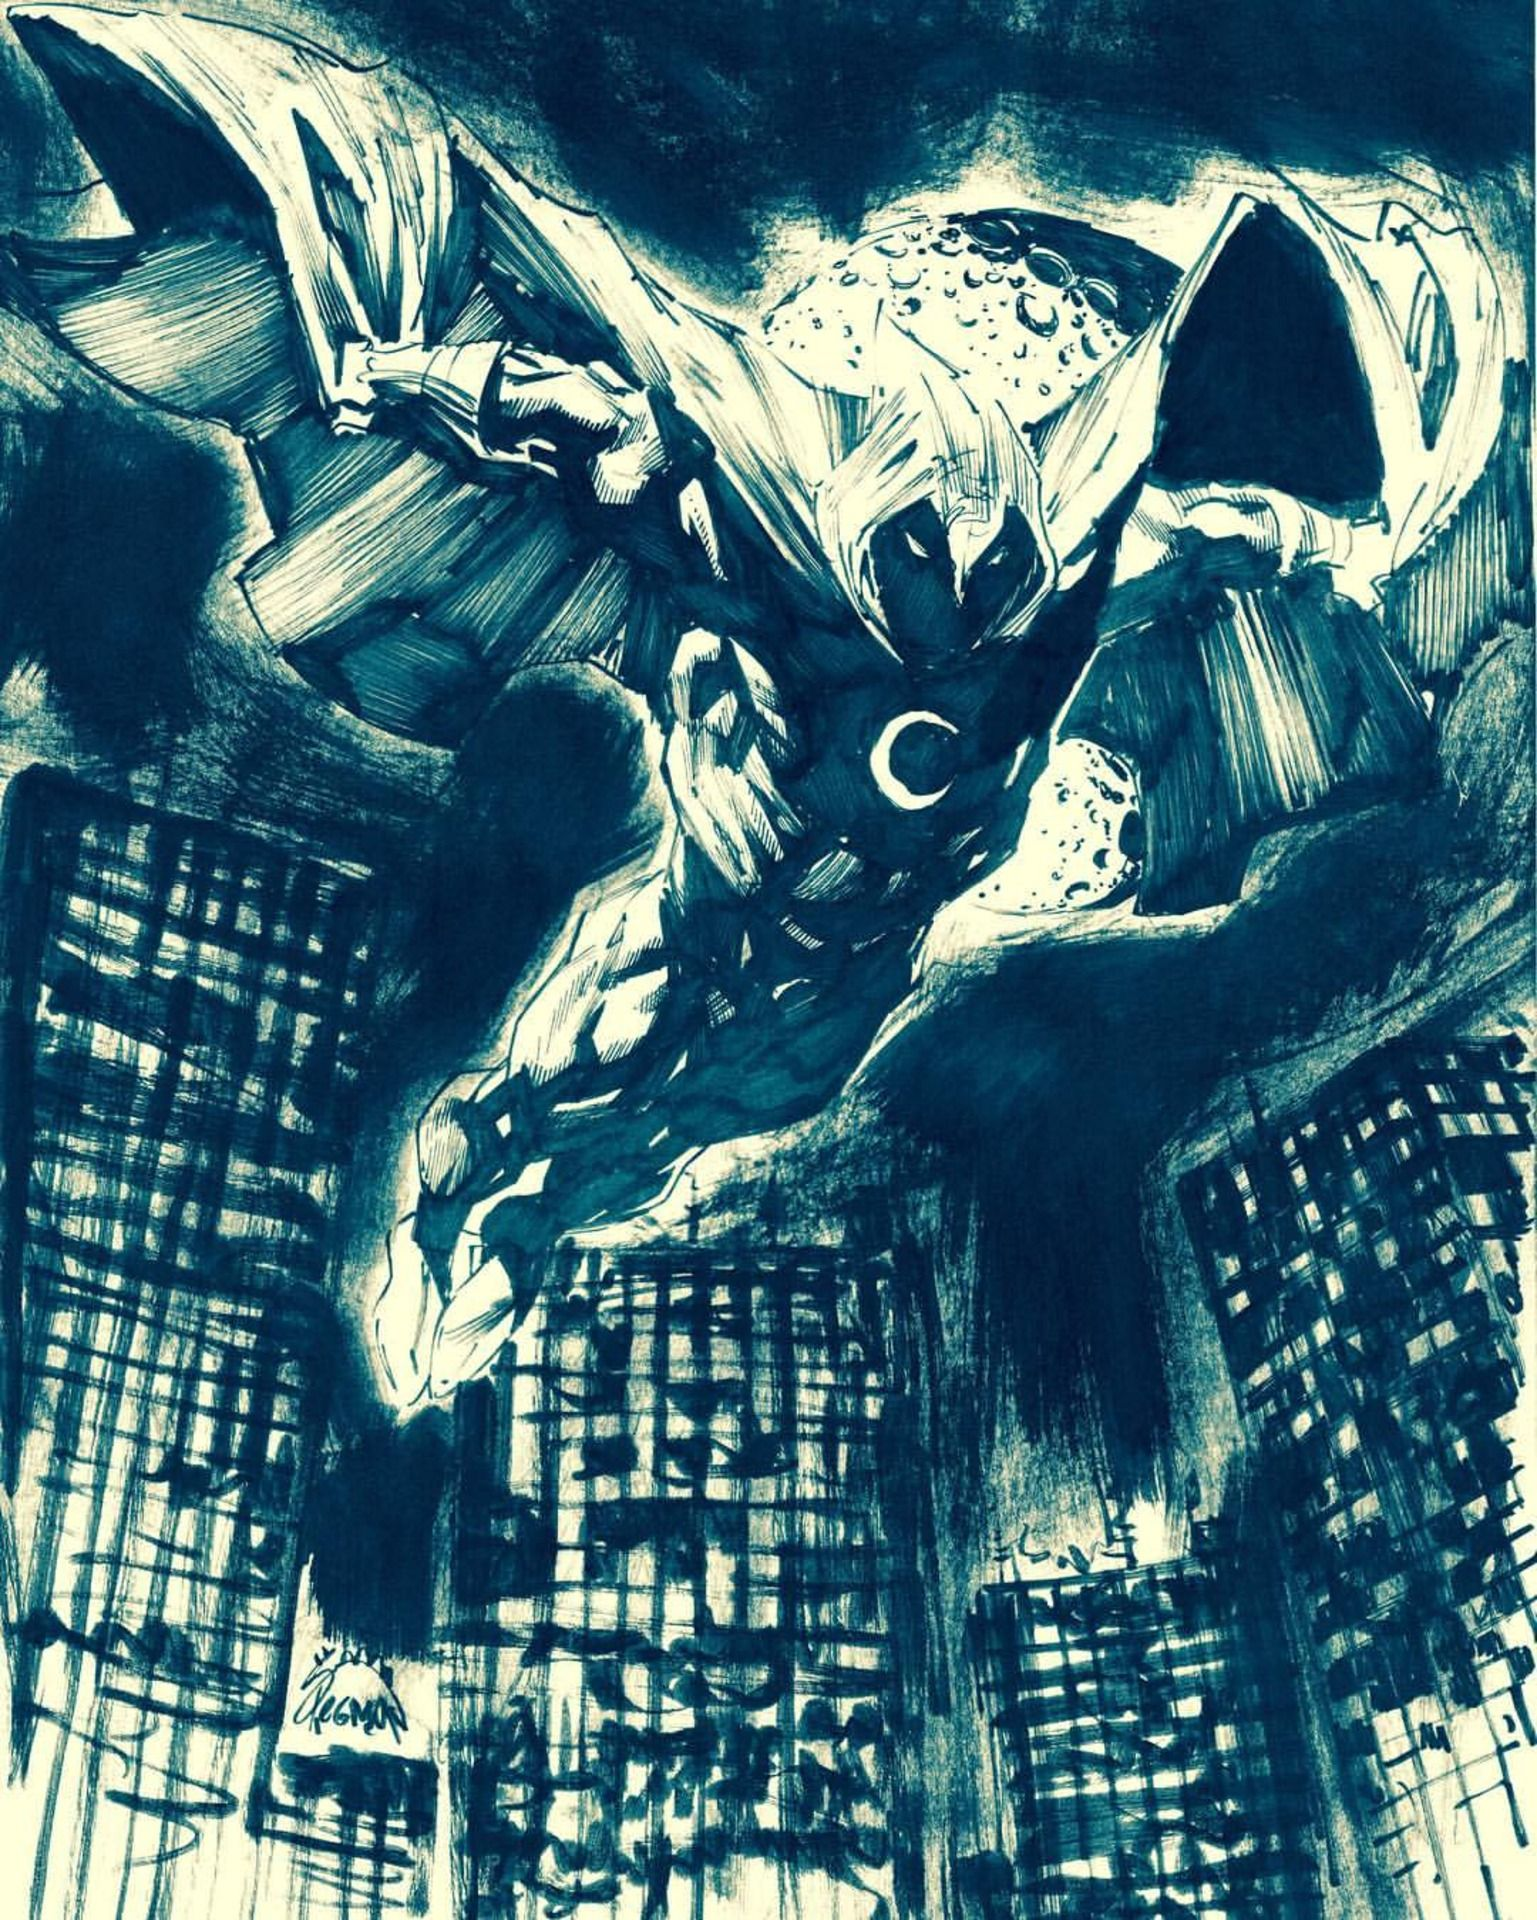 Awesome Art Picks: Spider-Man, Game of Thrones, Captain America, and More - Comic Vine